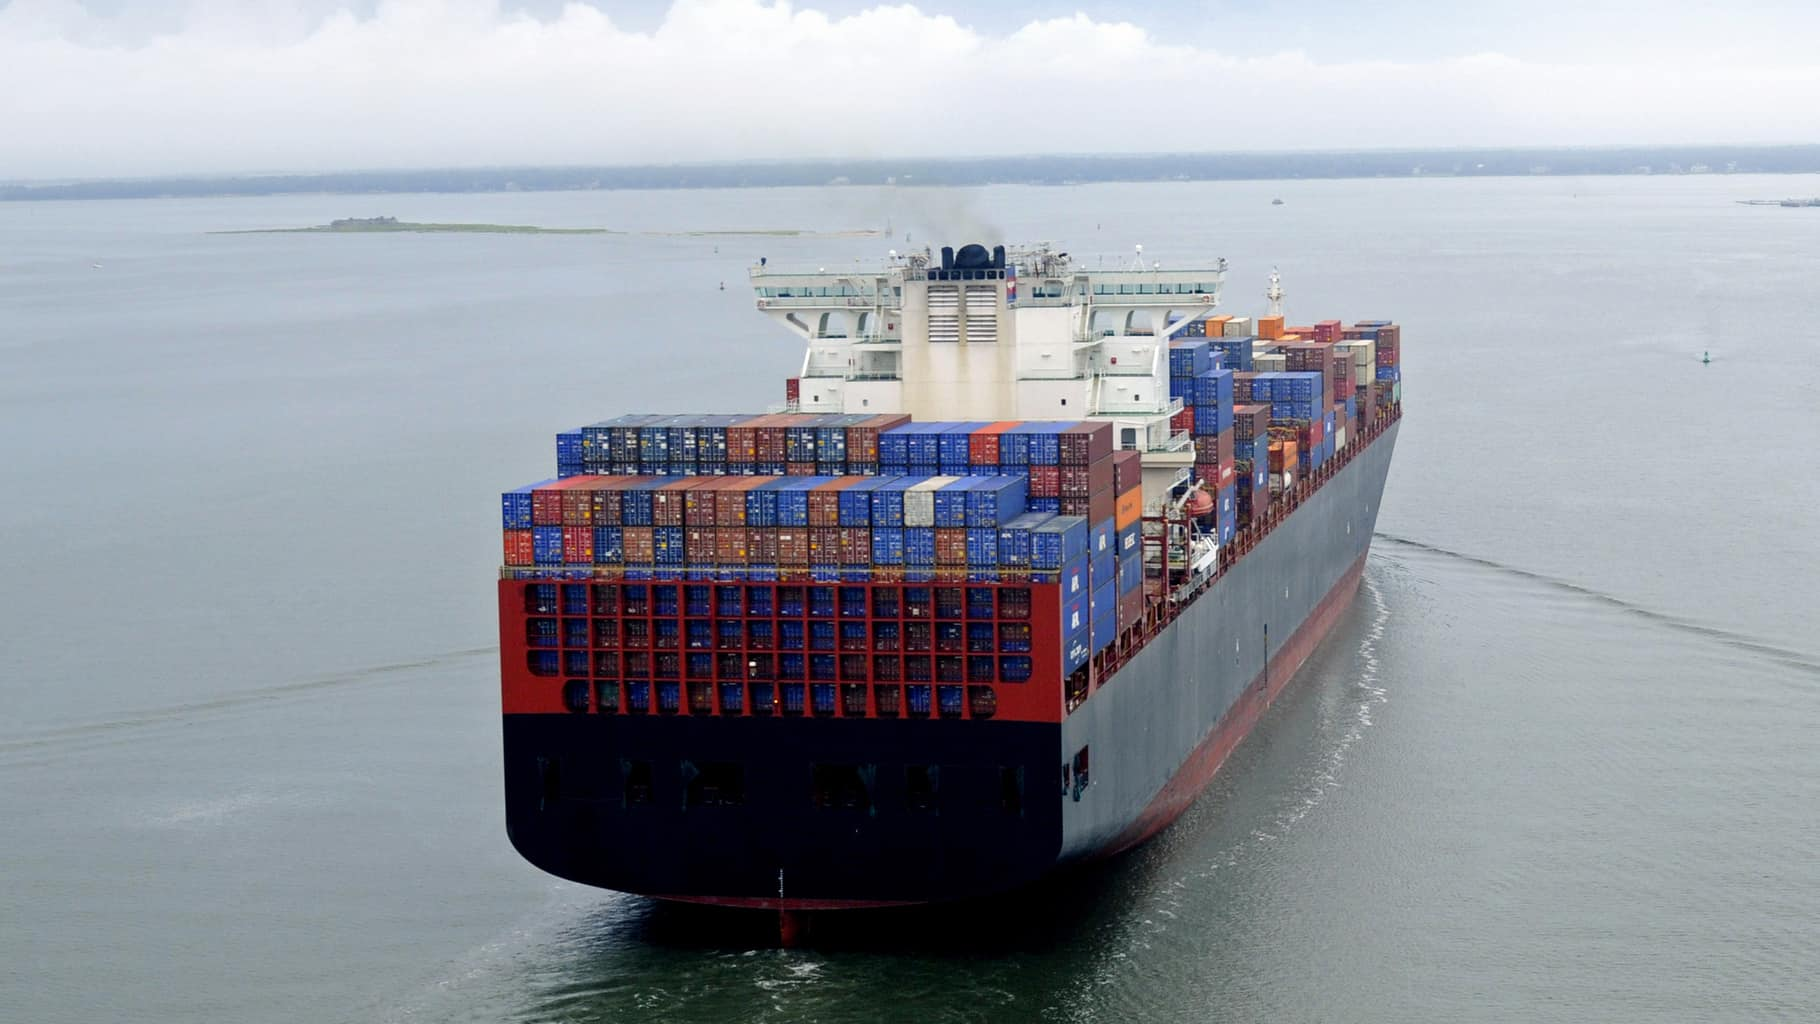 Photo of Amazon's ocean freight quid pro quo not yet resonating with merchants, forwarding executive says